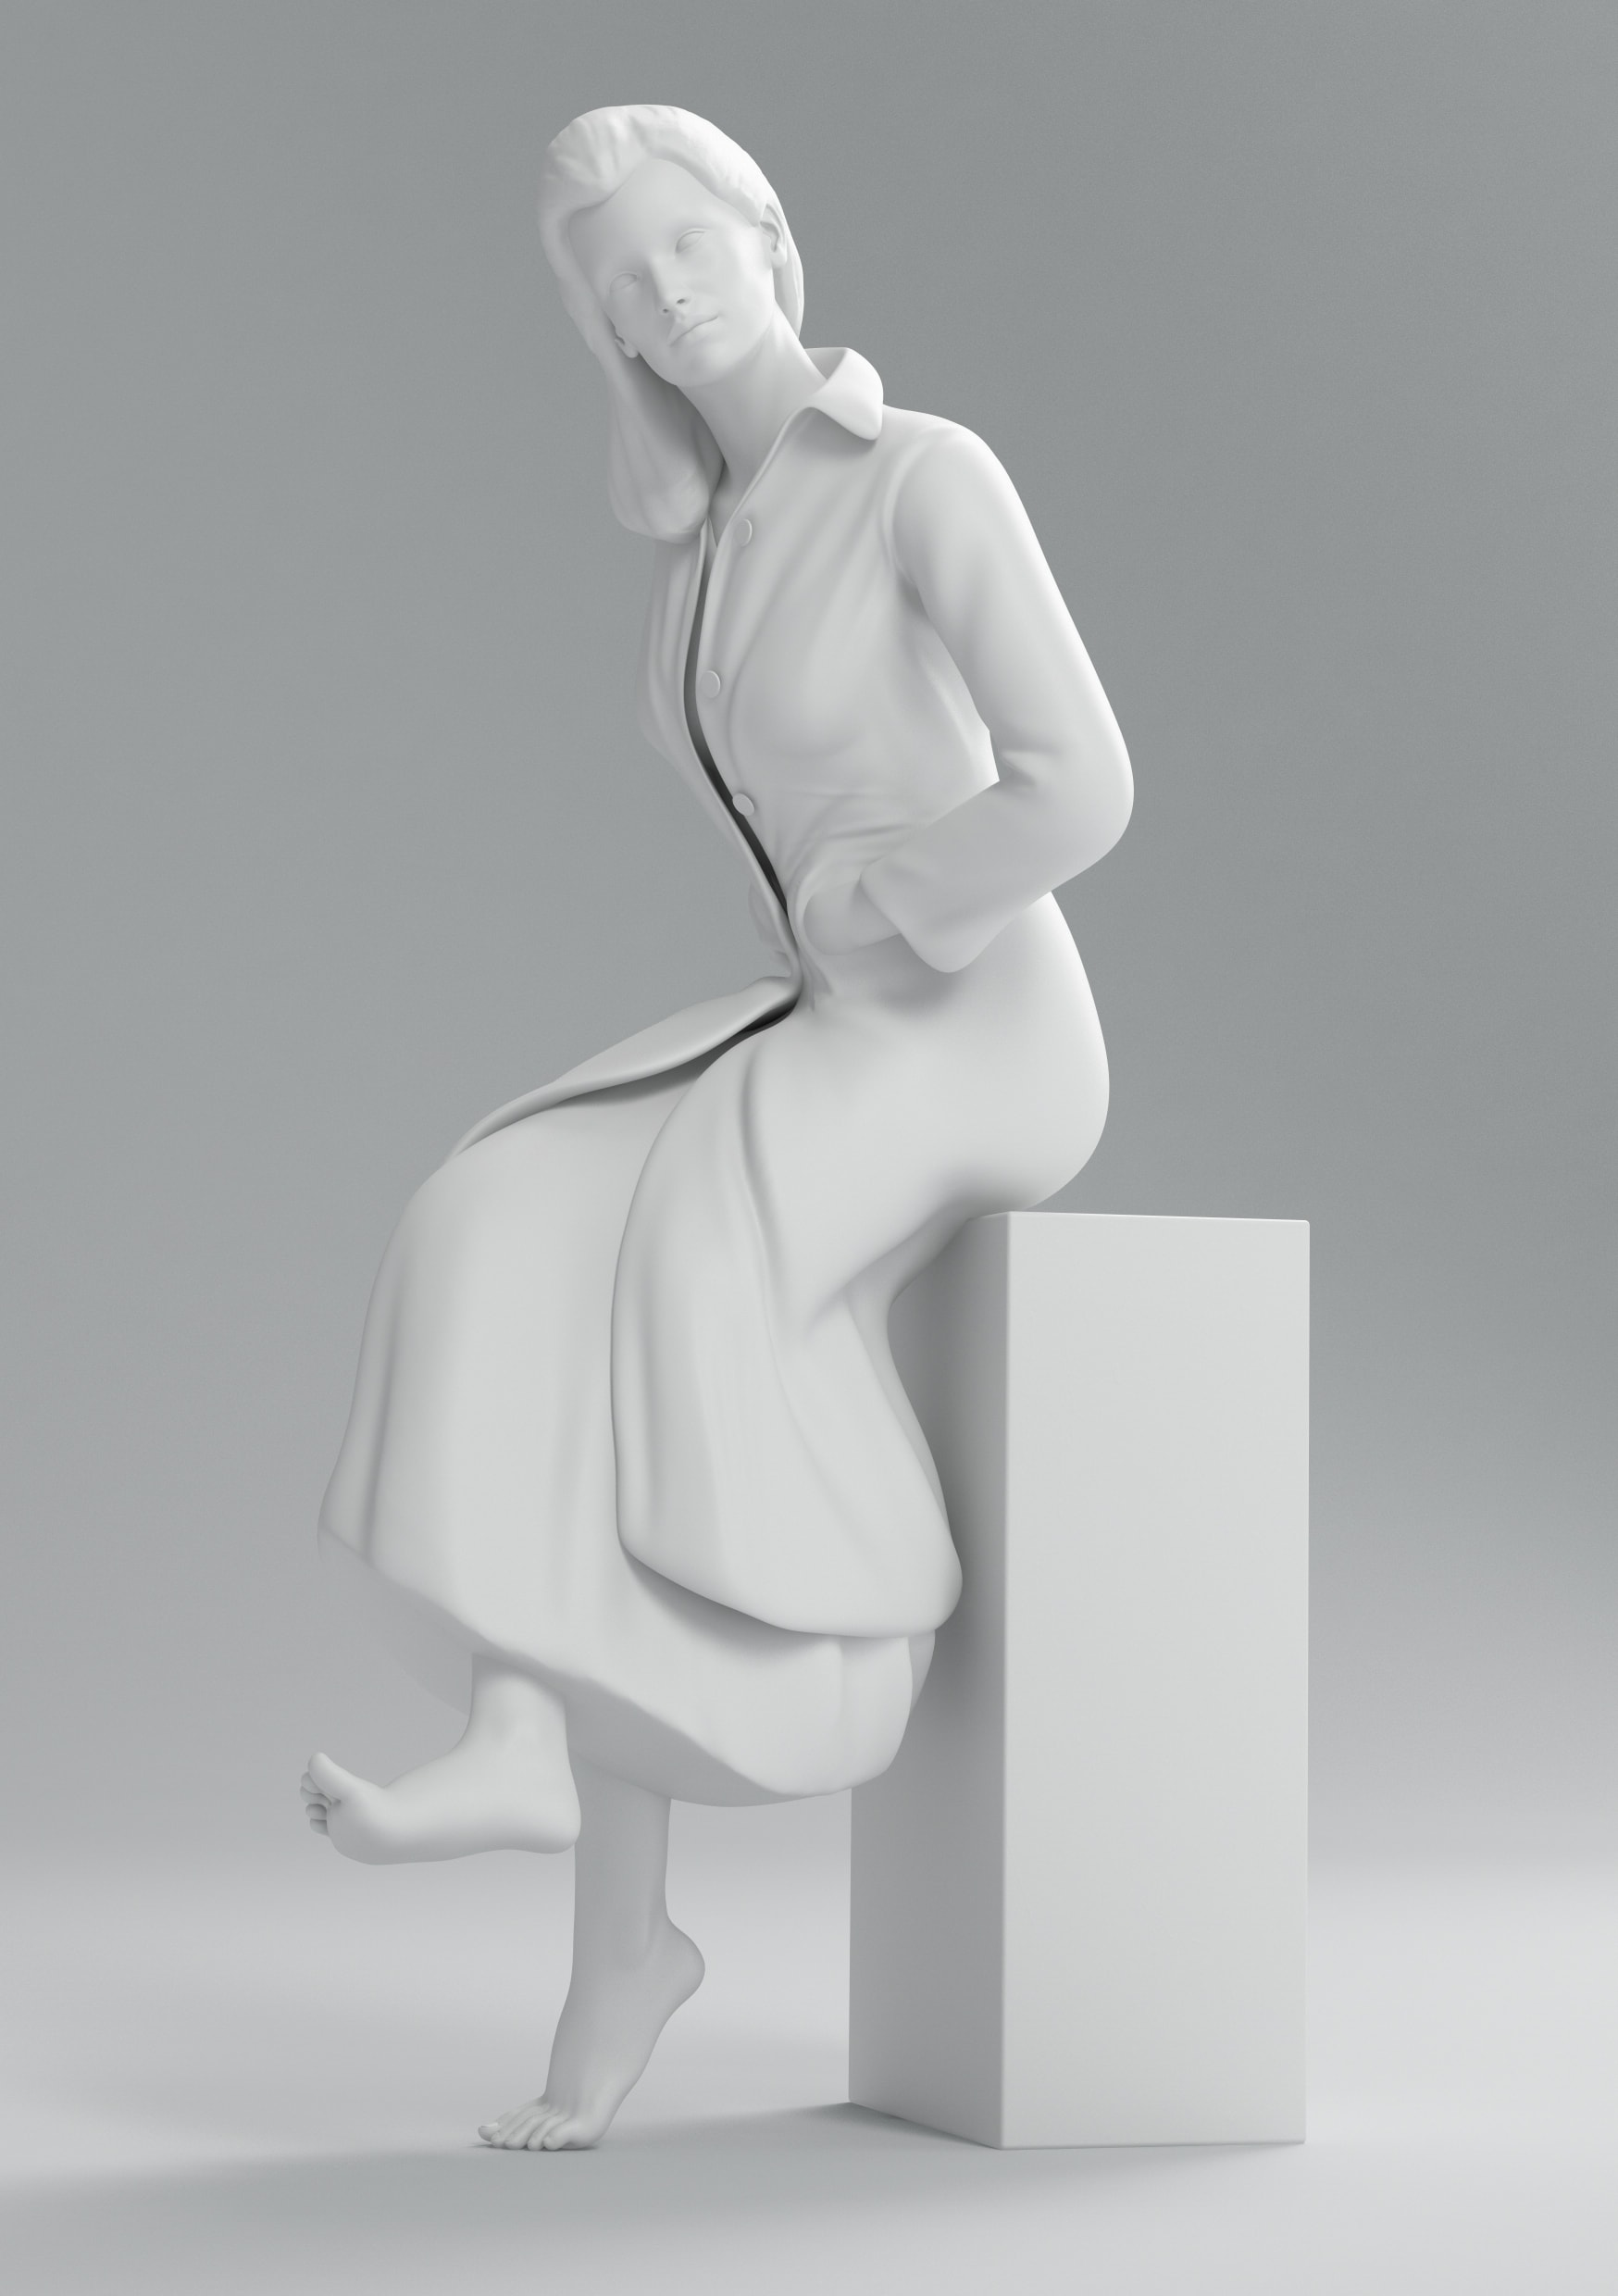 Prada black and white fashion render pose collection cgi still